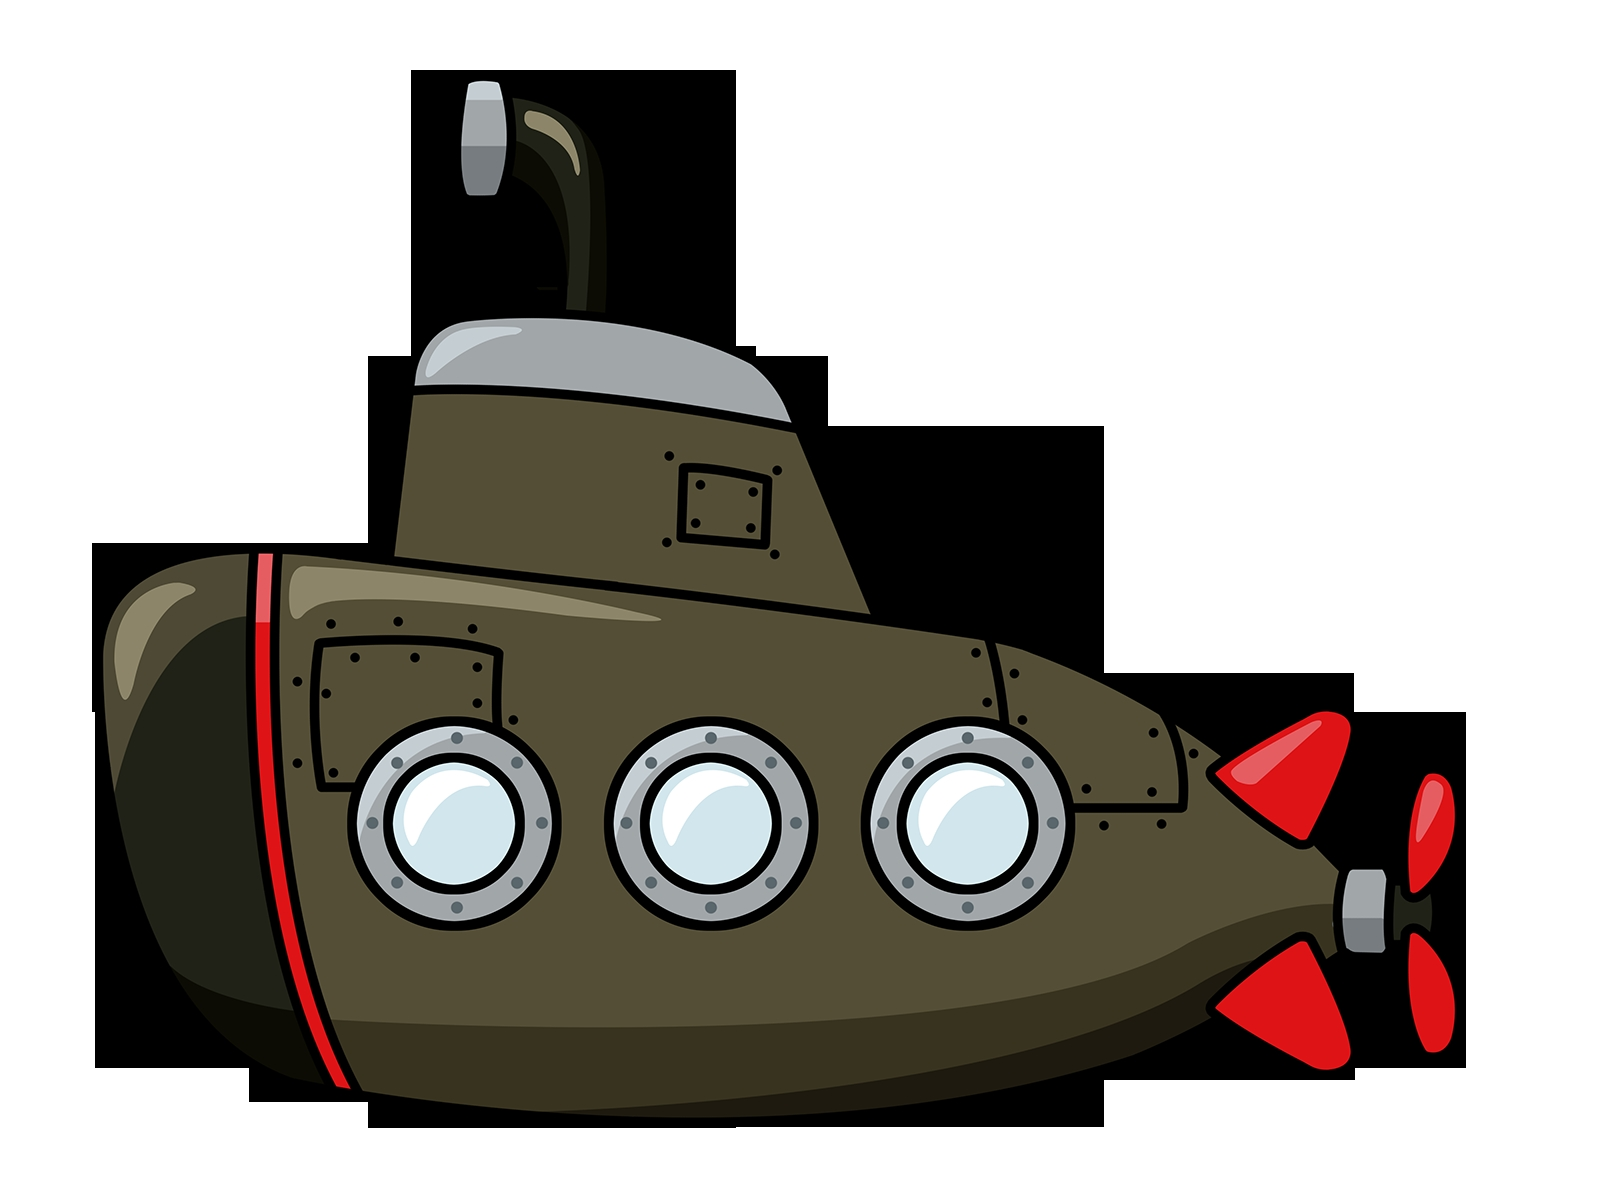 1600x1200 Best Of Submarine Clipart Collection